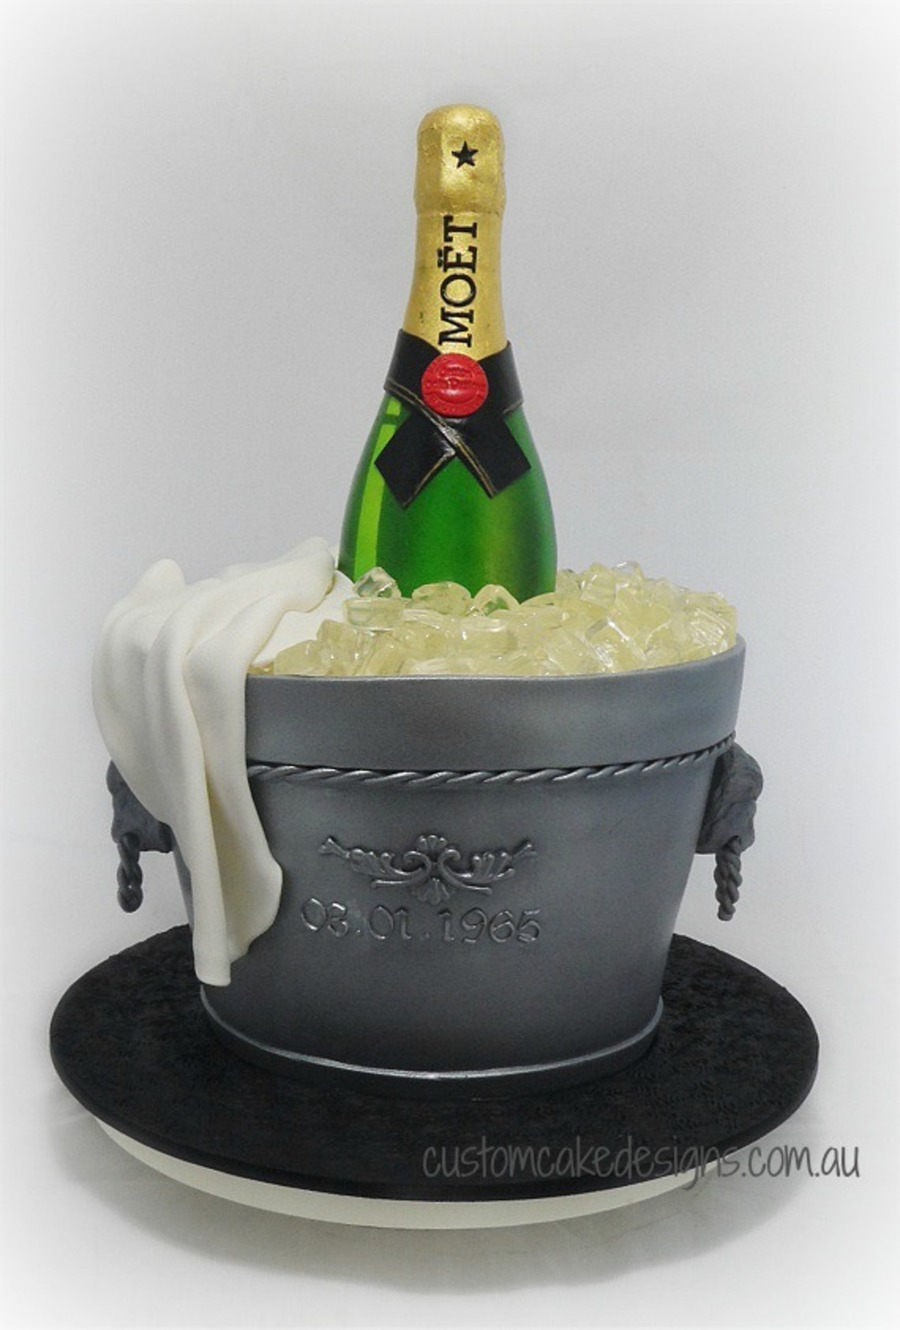 A Bottle Of Moet Champagne On Ice Cake To Cater For Approx 60 Guests The